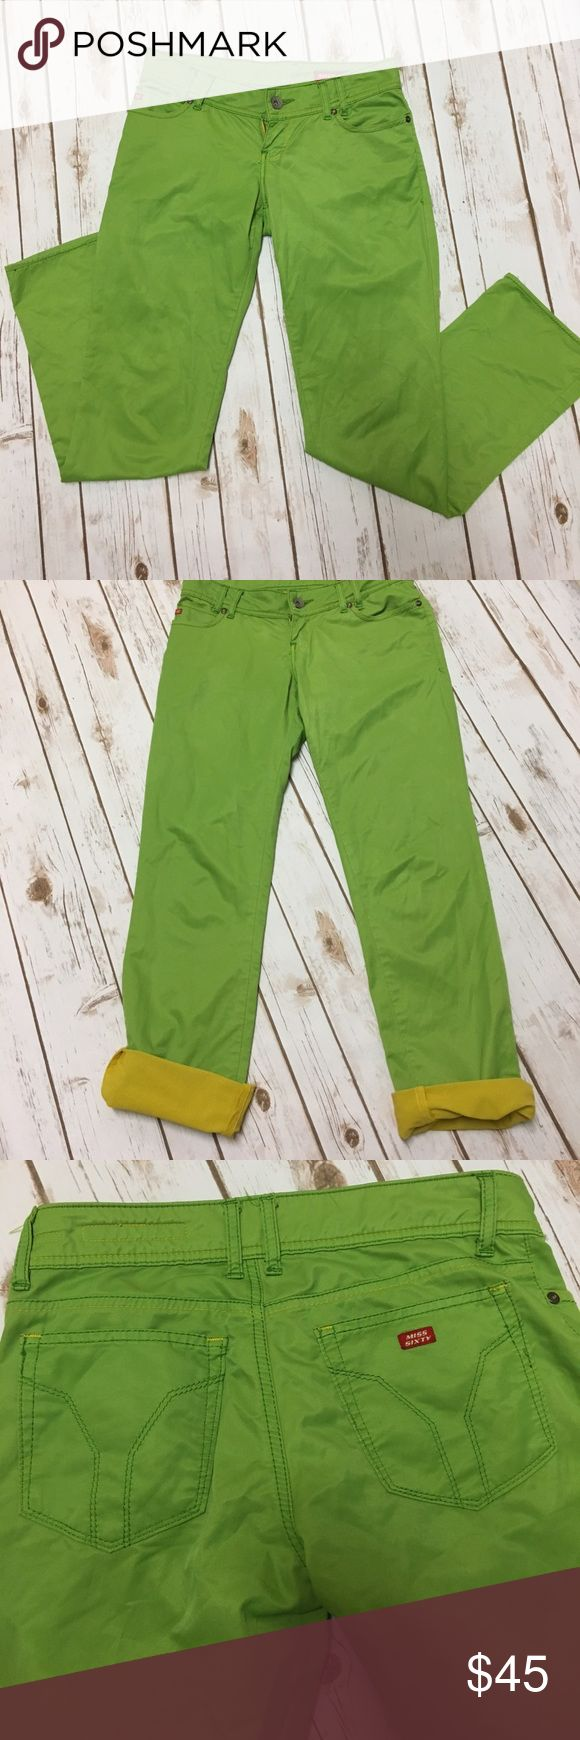 """Miss Sixty Italian Capris These feel like luxury sheets!  They're really cute and pretty bright  green with yellow lining. Made in Italy, 62% Cotton, 32% Nylon, 6%, Elastic. Approx measurements 16"""" Waist, 29"""" inseam. Miss Sixty Pants Ankle & Cropped"""